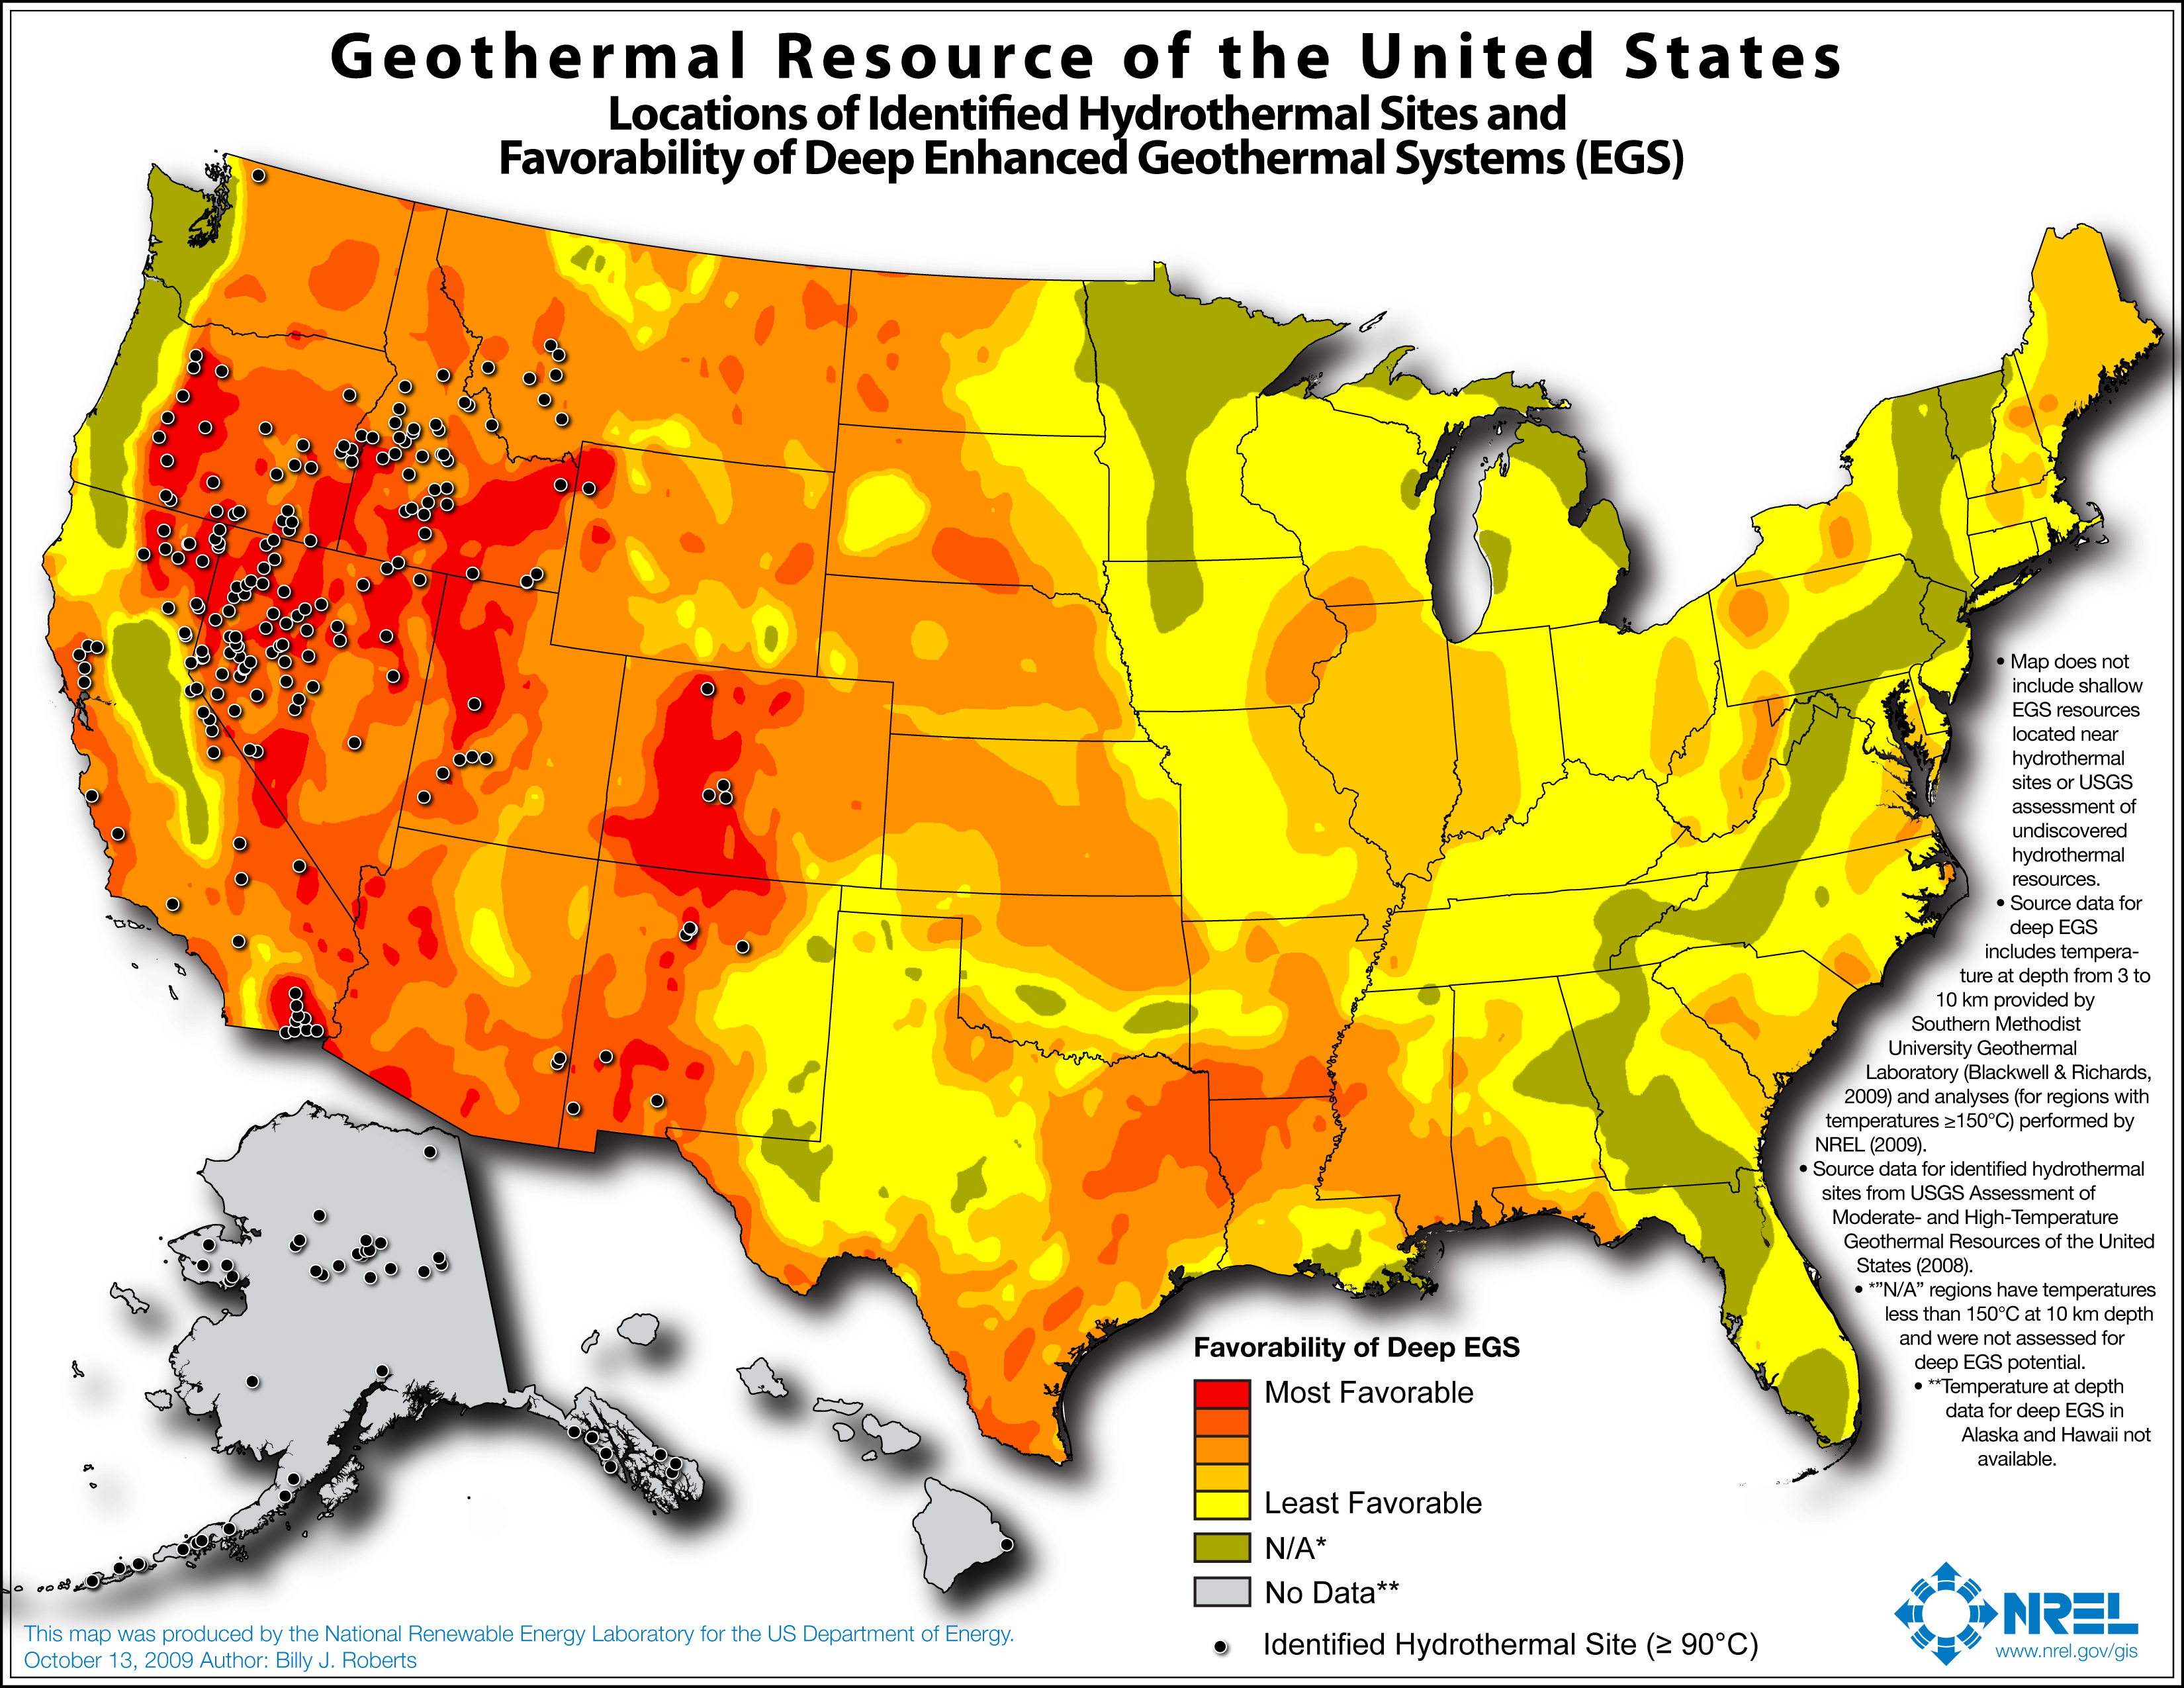 Map of potential geothermal resources across the United States